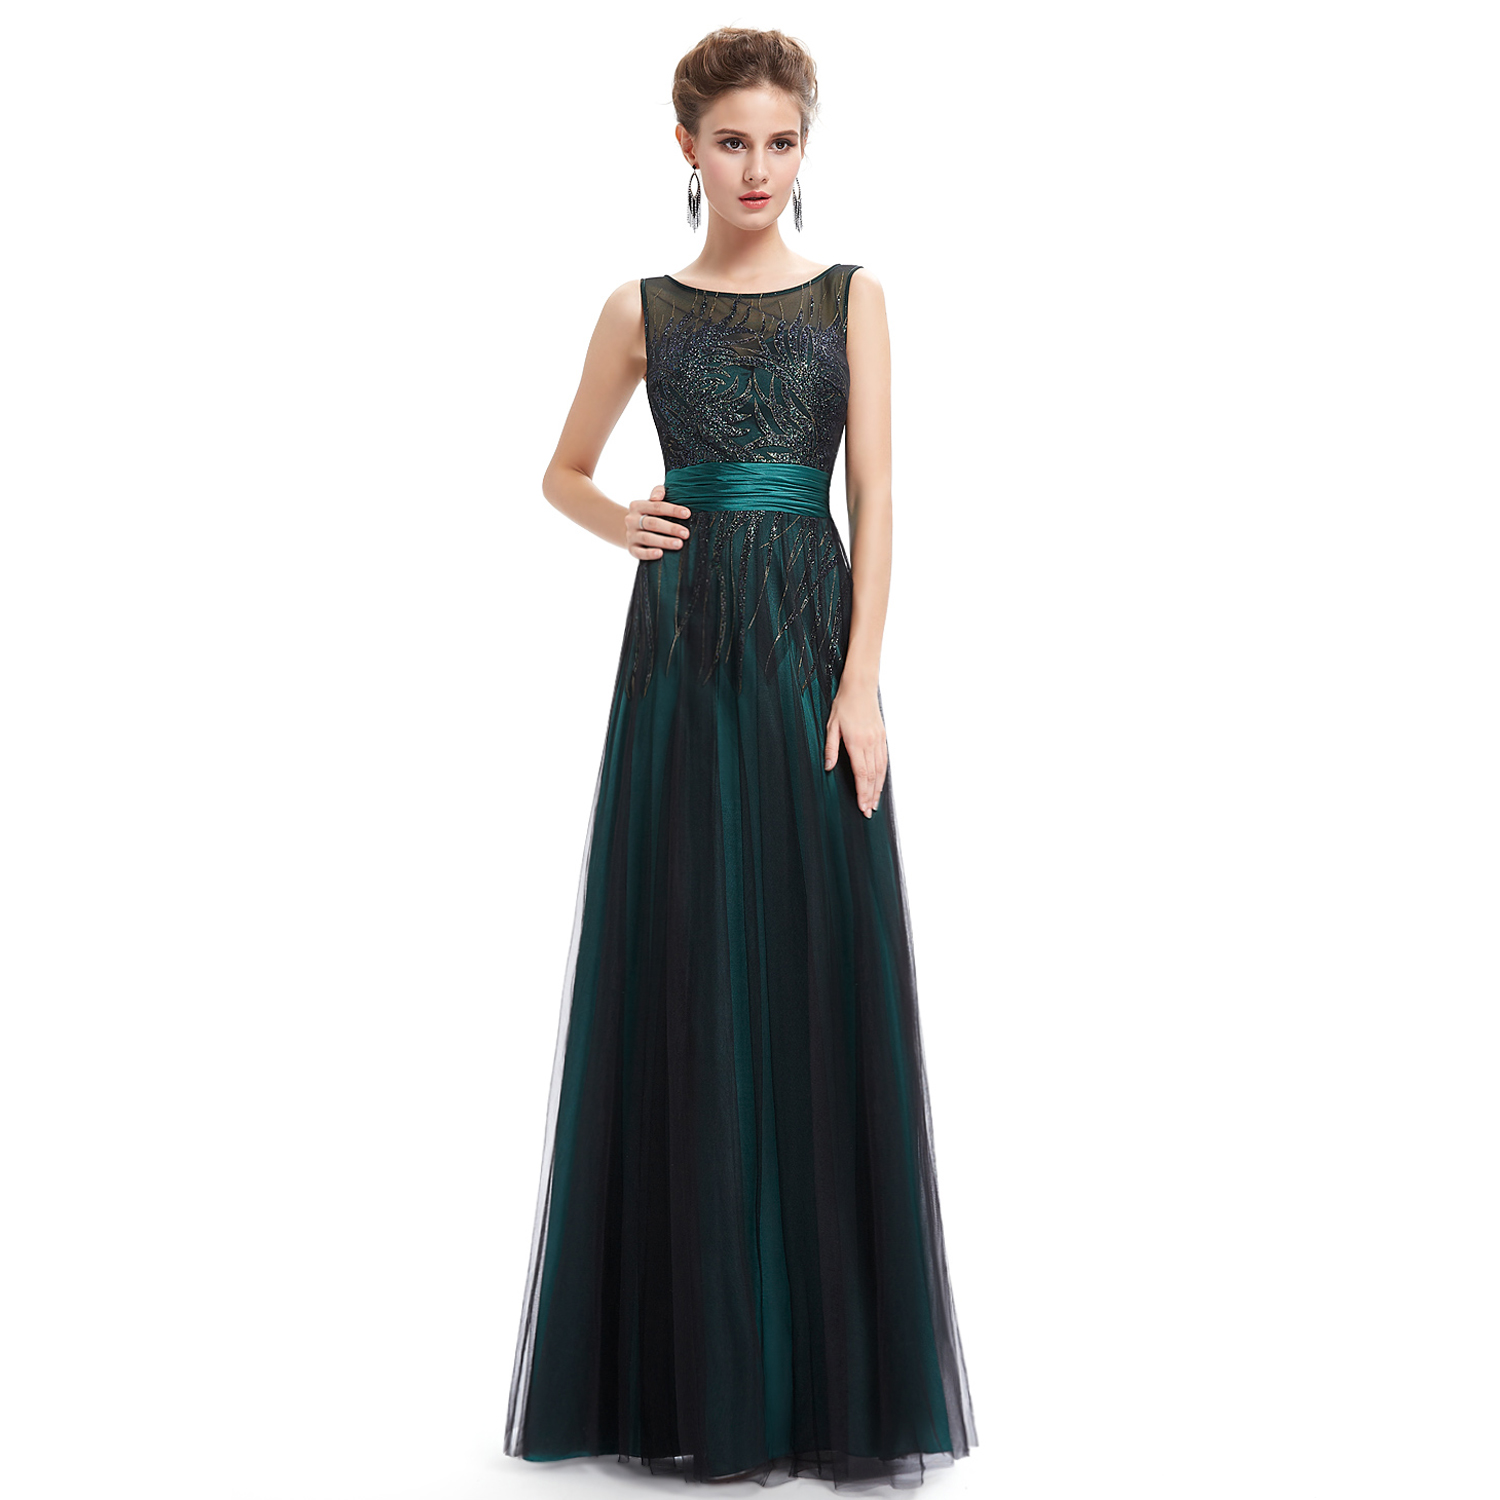 Elegant Green Black Evening Round Neck Long Party Evening Formal New Dress 08740